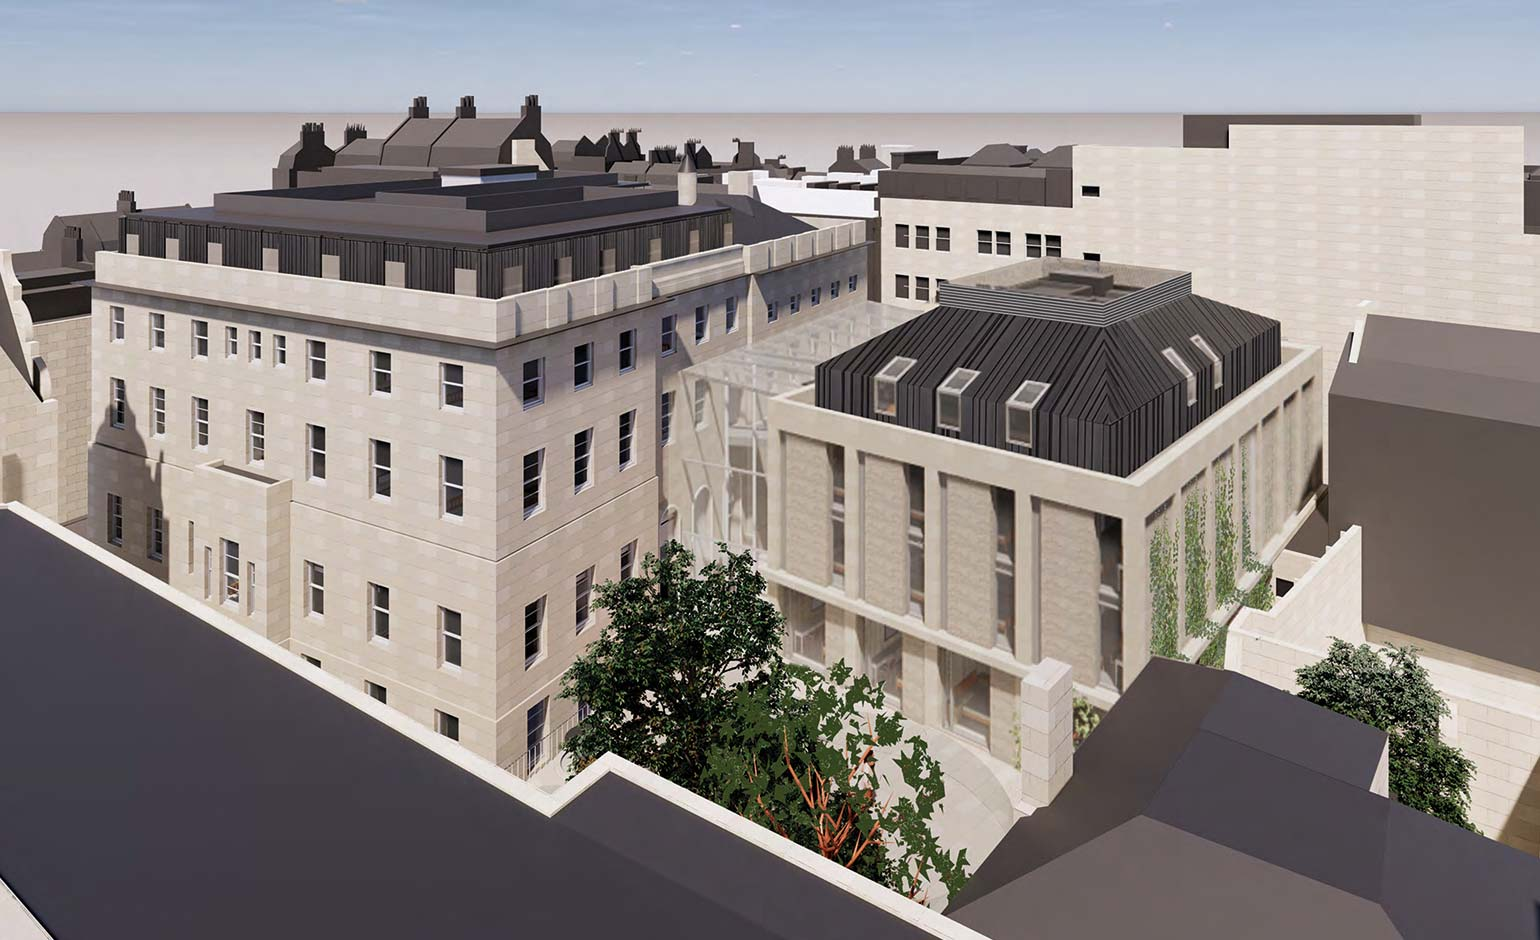 Plans to transform former Bath hospital revised after nearly 100 objections